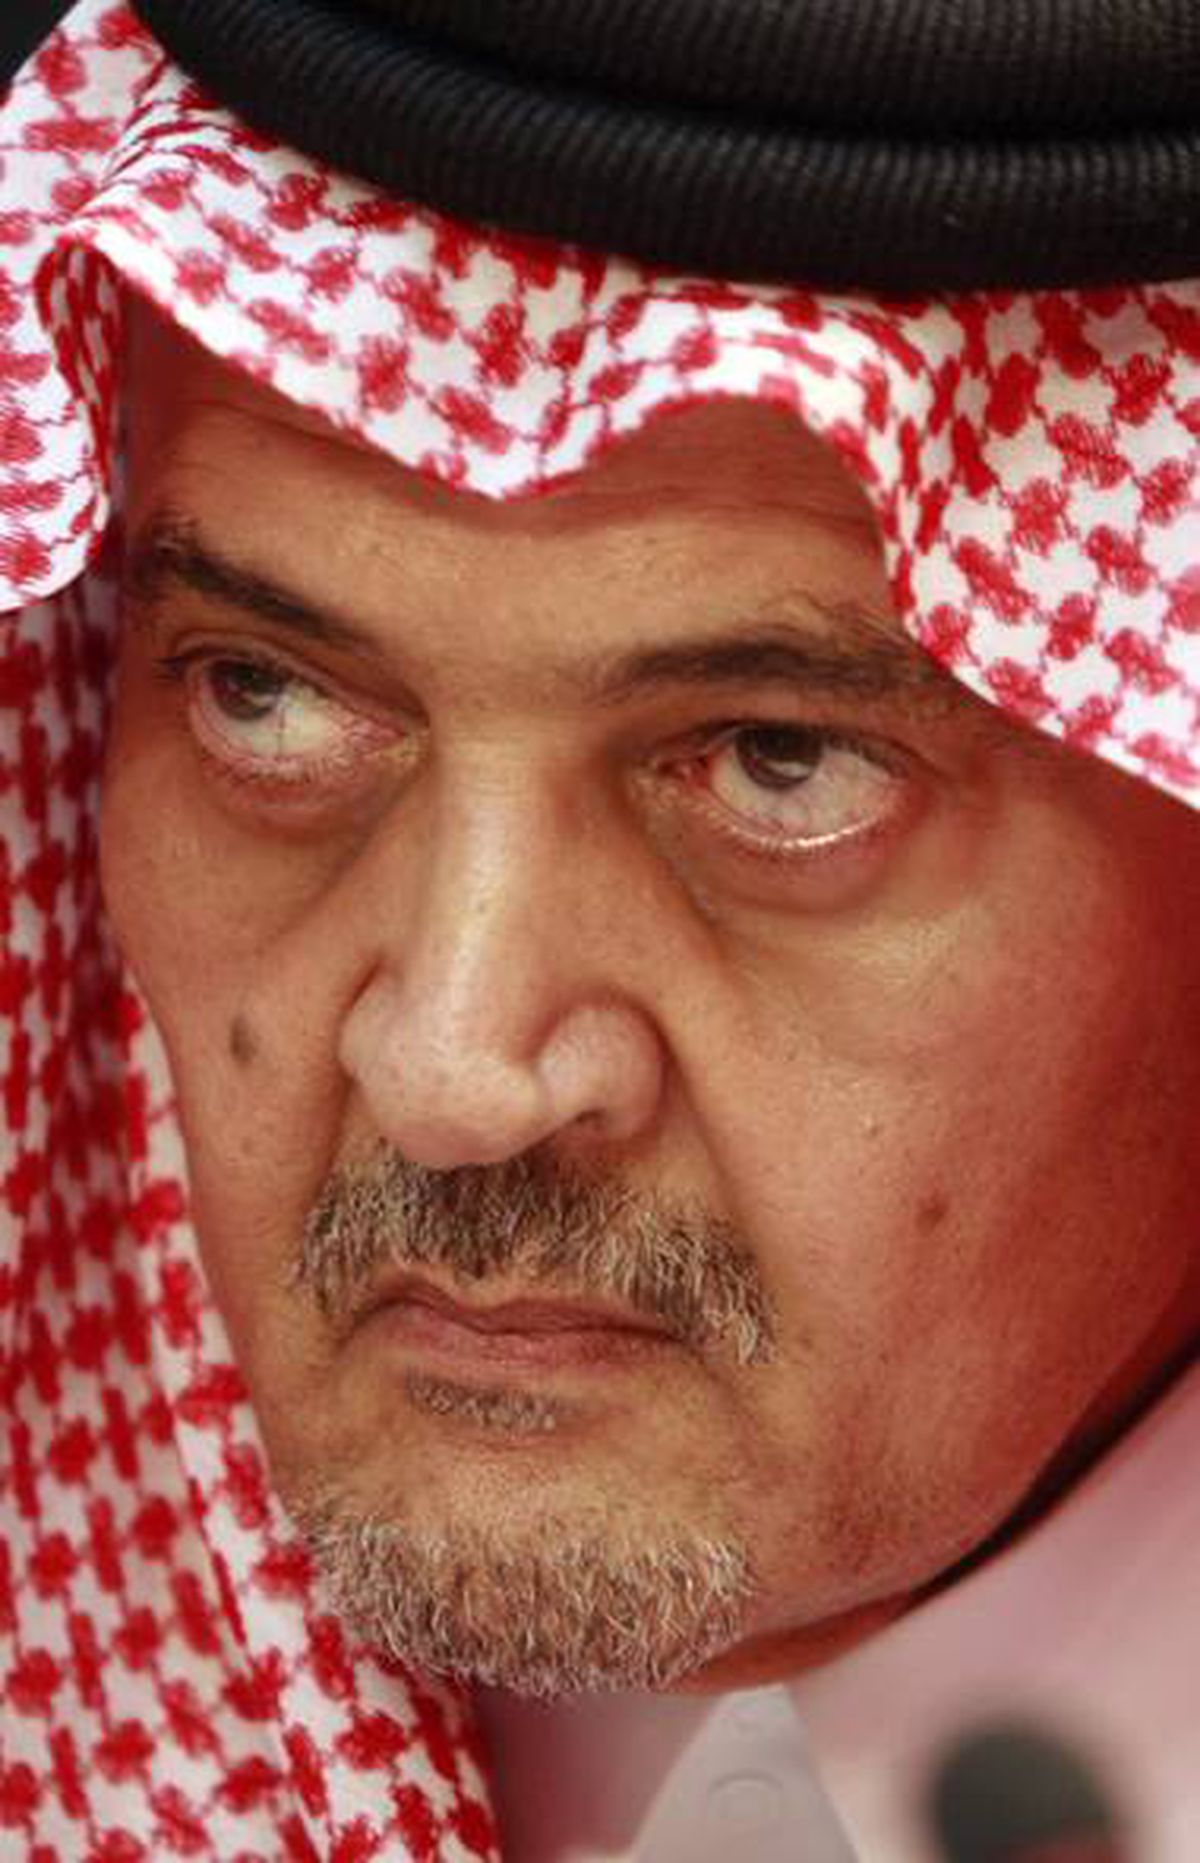 """SAUDI ARABIA: Saudi Arabia proposed deploying an Arab military force backed by U.S. and NATO airpower to Lebanon two years ago to crush Hezbollah and prevent the militant group – and its patron Iran – from taking power in Beirut, leaked U.S. government documents show. The proposal – made by Saudi Foreign Minister Saud al-Faisal during talks with U.S. diplomat David Satterfield in May, 2008 – was never acted on, but it reflects concerns in Riyadh and other Sunni Arab capitals about the growing influence of Shiite Iran in the region. In the meeting, Saud said that a """"security response"""" was needed to Hezbollah's challenge to the Lebanese government of then-Prime Minister Fuad Siniora, warning that a Hezbollah """"victory in Beirut would mean the end of the Siniora government and the 'Iranian takeover' of Lebanon,"""" according to a cable."""